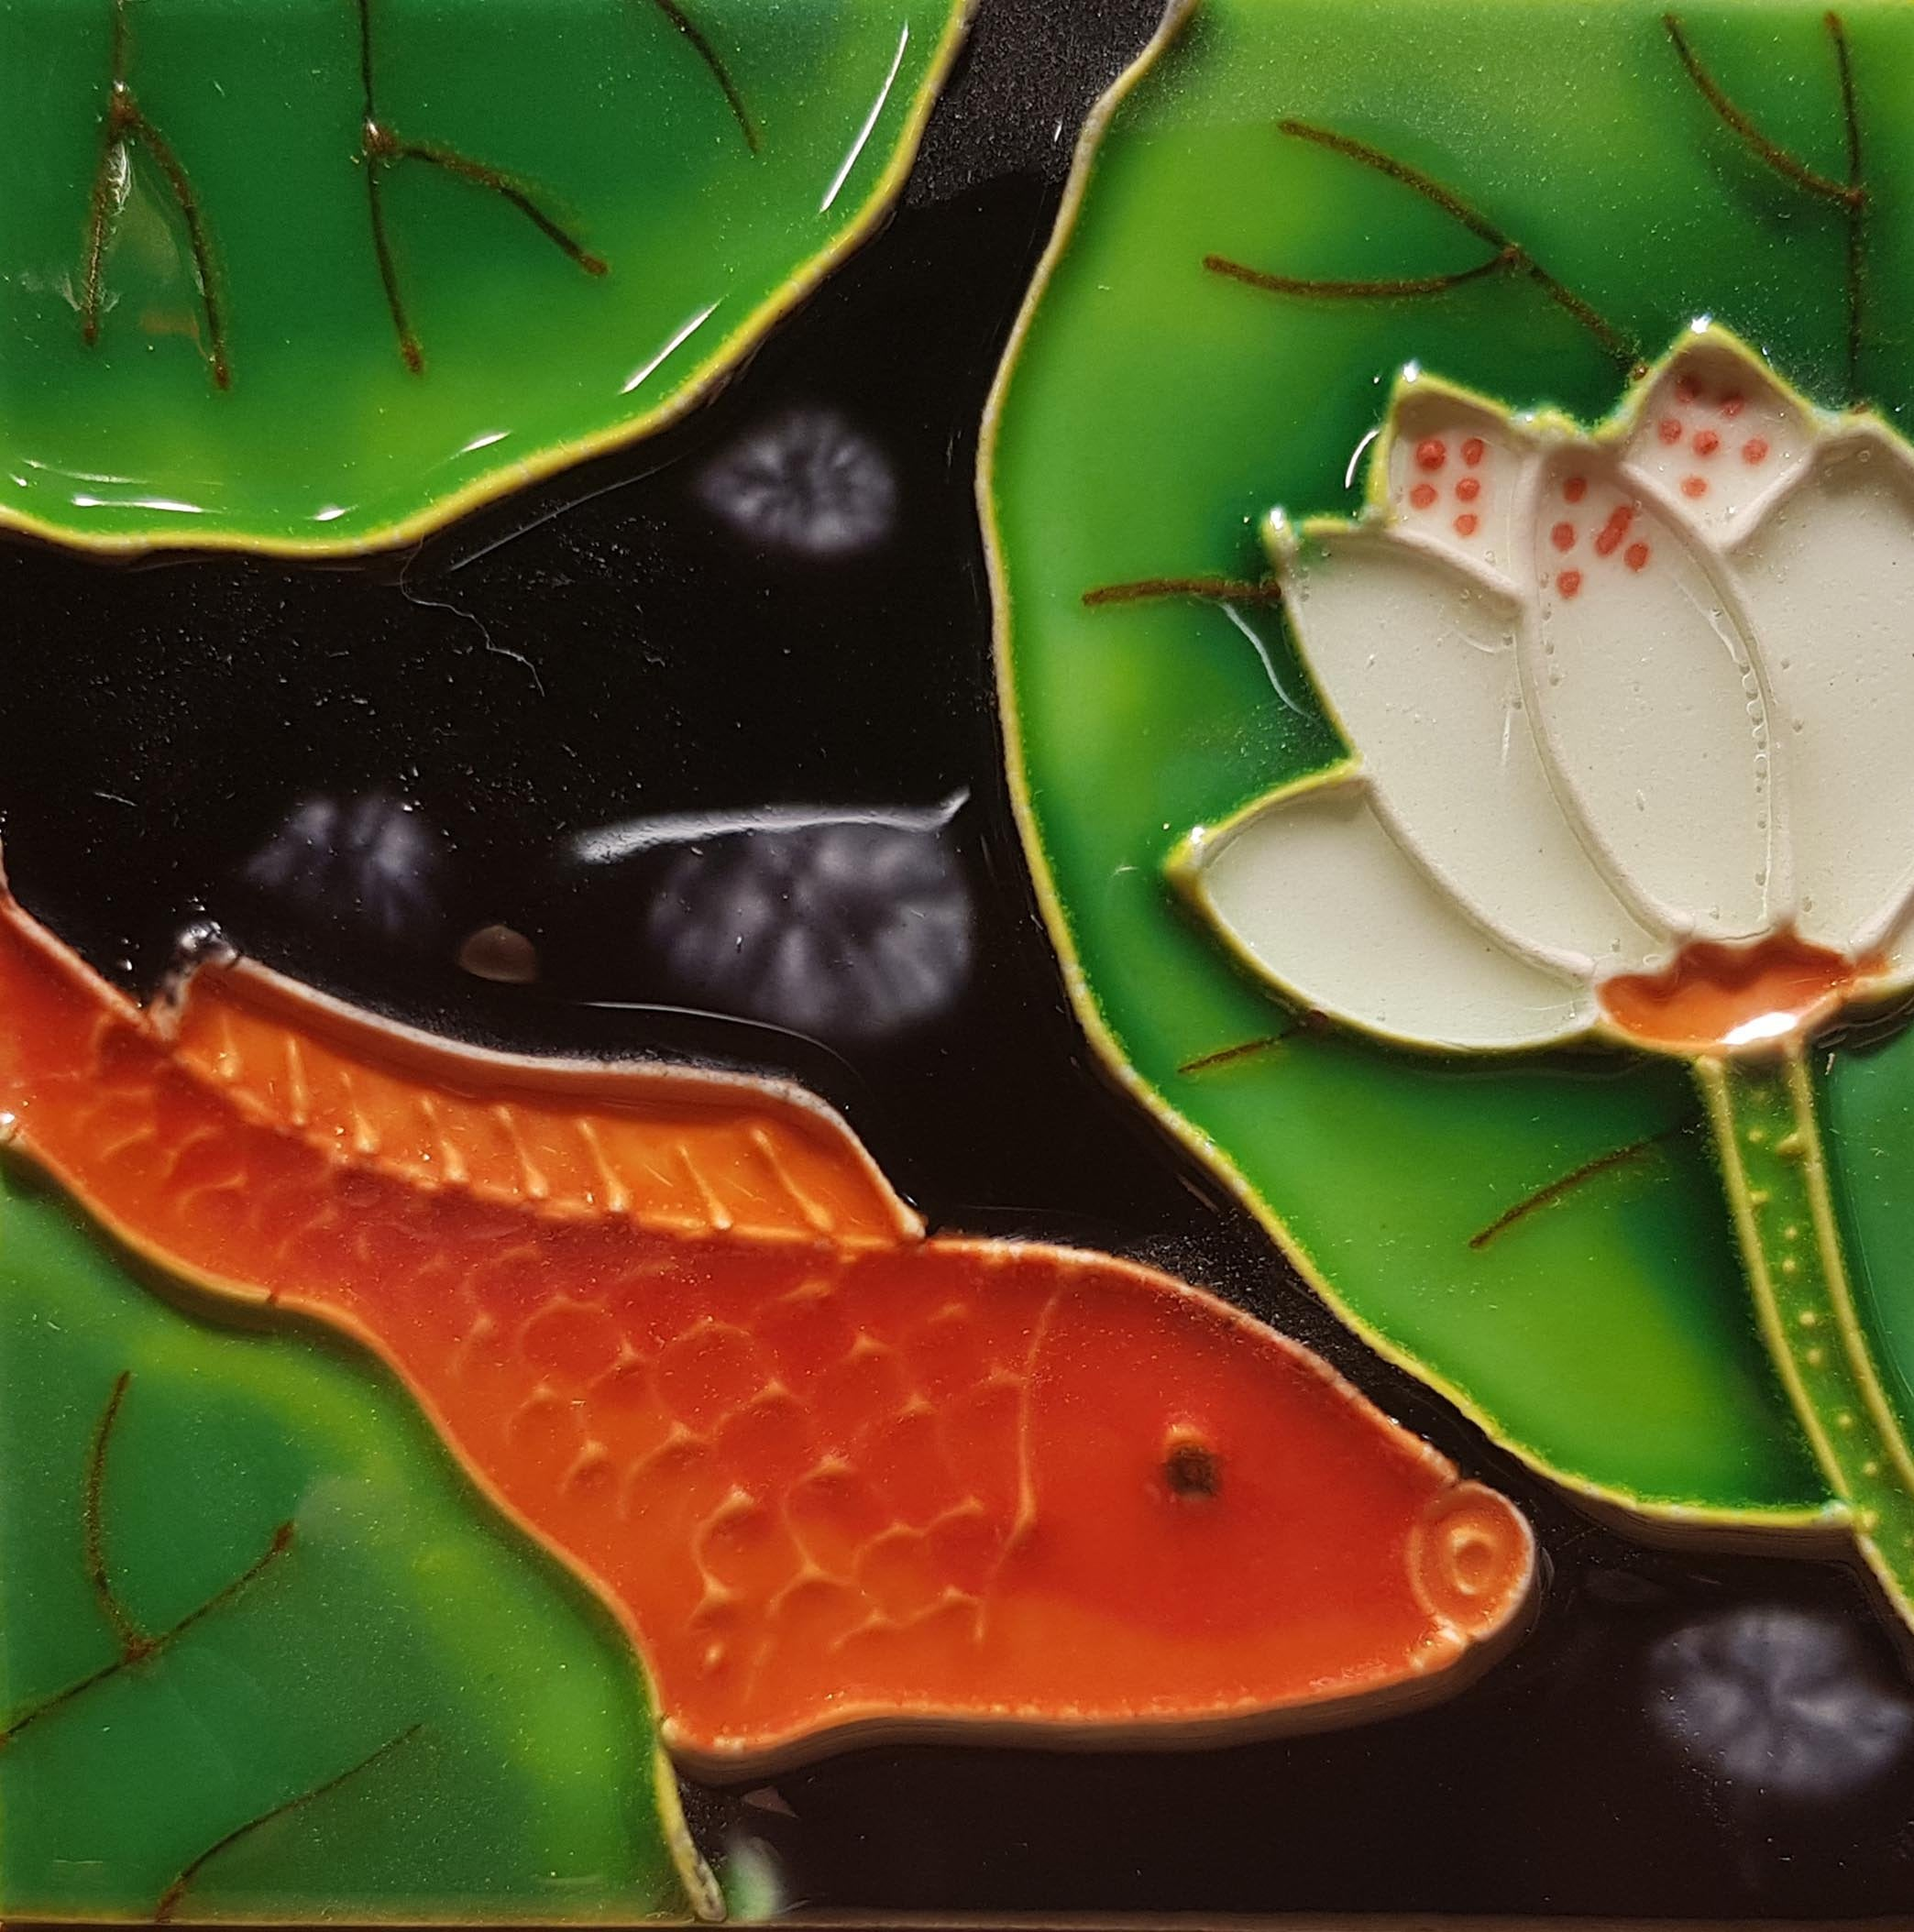 1085 Lotus with Carp Right Profile 1 10cm x 10cm Ceramic Tile